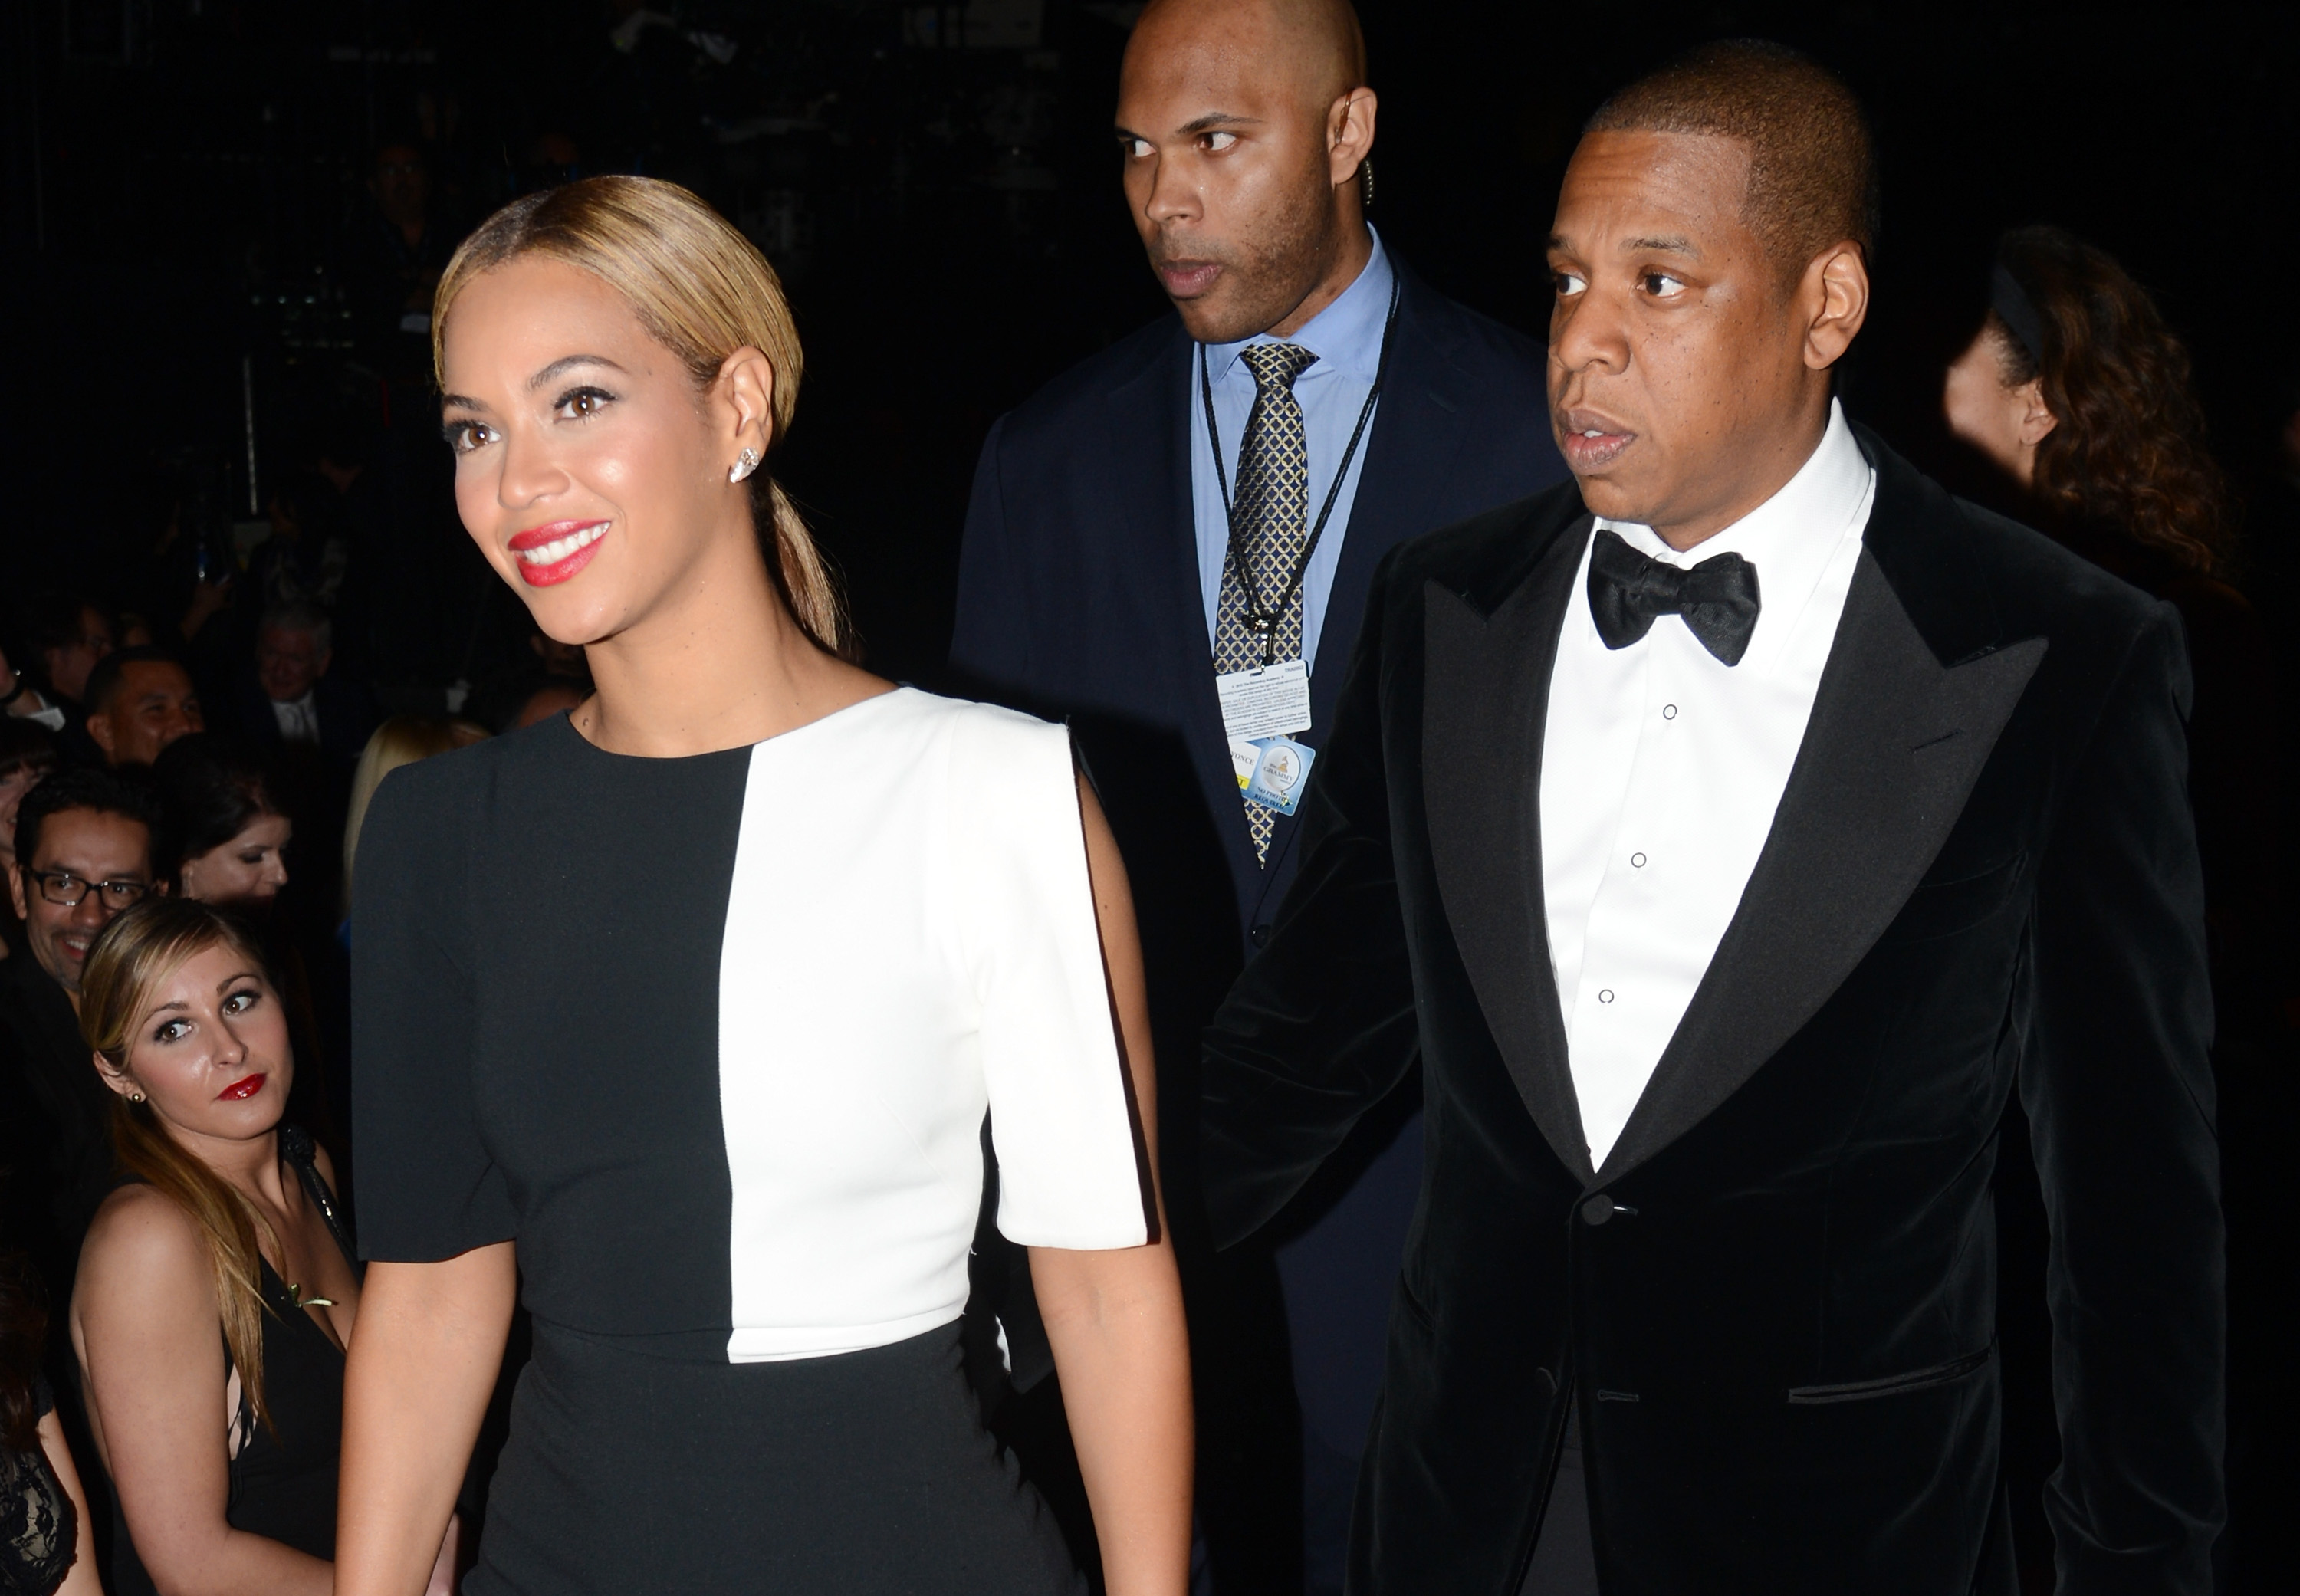 Beyonce and Jay-Z attend the 55th Annual GRAMMY Awards at [f500link]Staples[/f500link] Center on February 10, 2013 in Los Angeles, California. (Photo by Jeff Kravitz/FilmMagic)